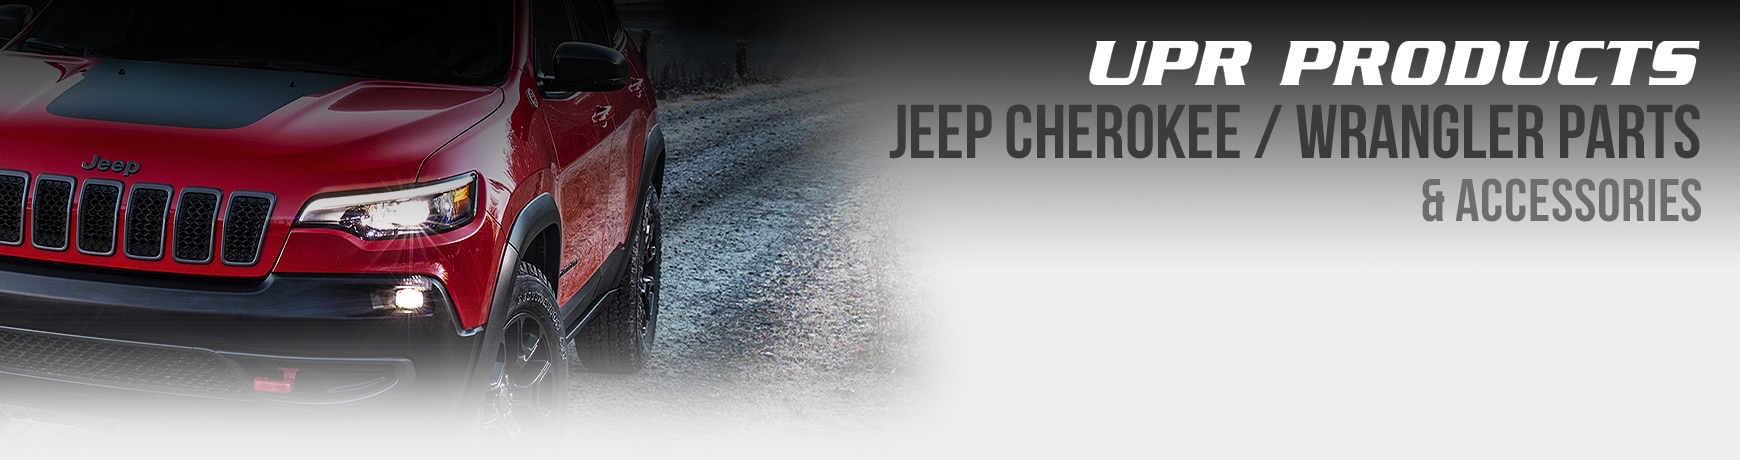 UPR Jeep Cherokee / Wrangler Parts & Accessories